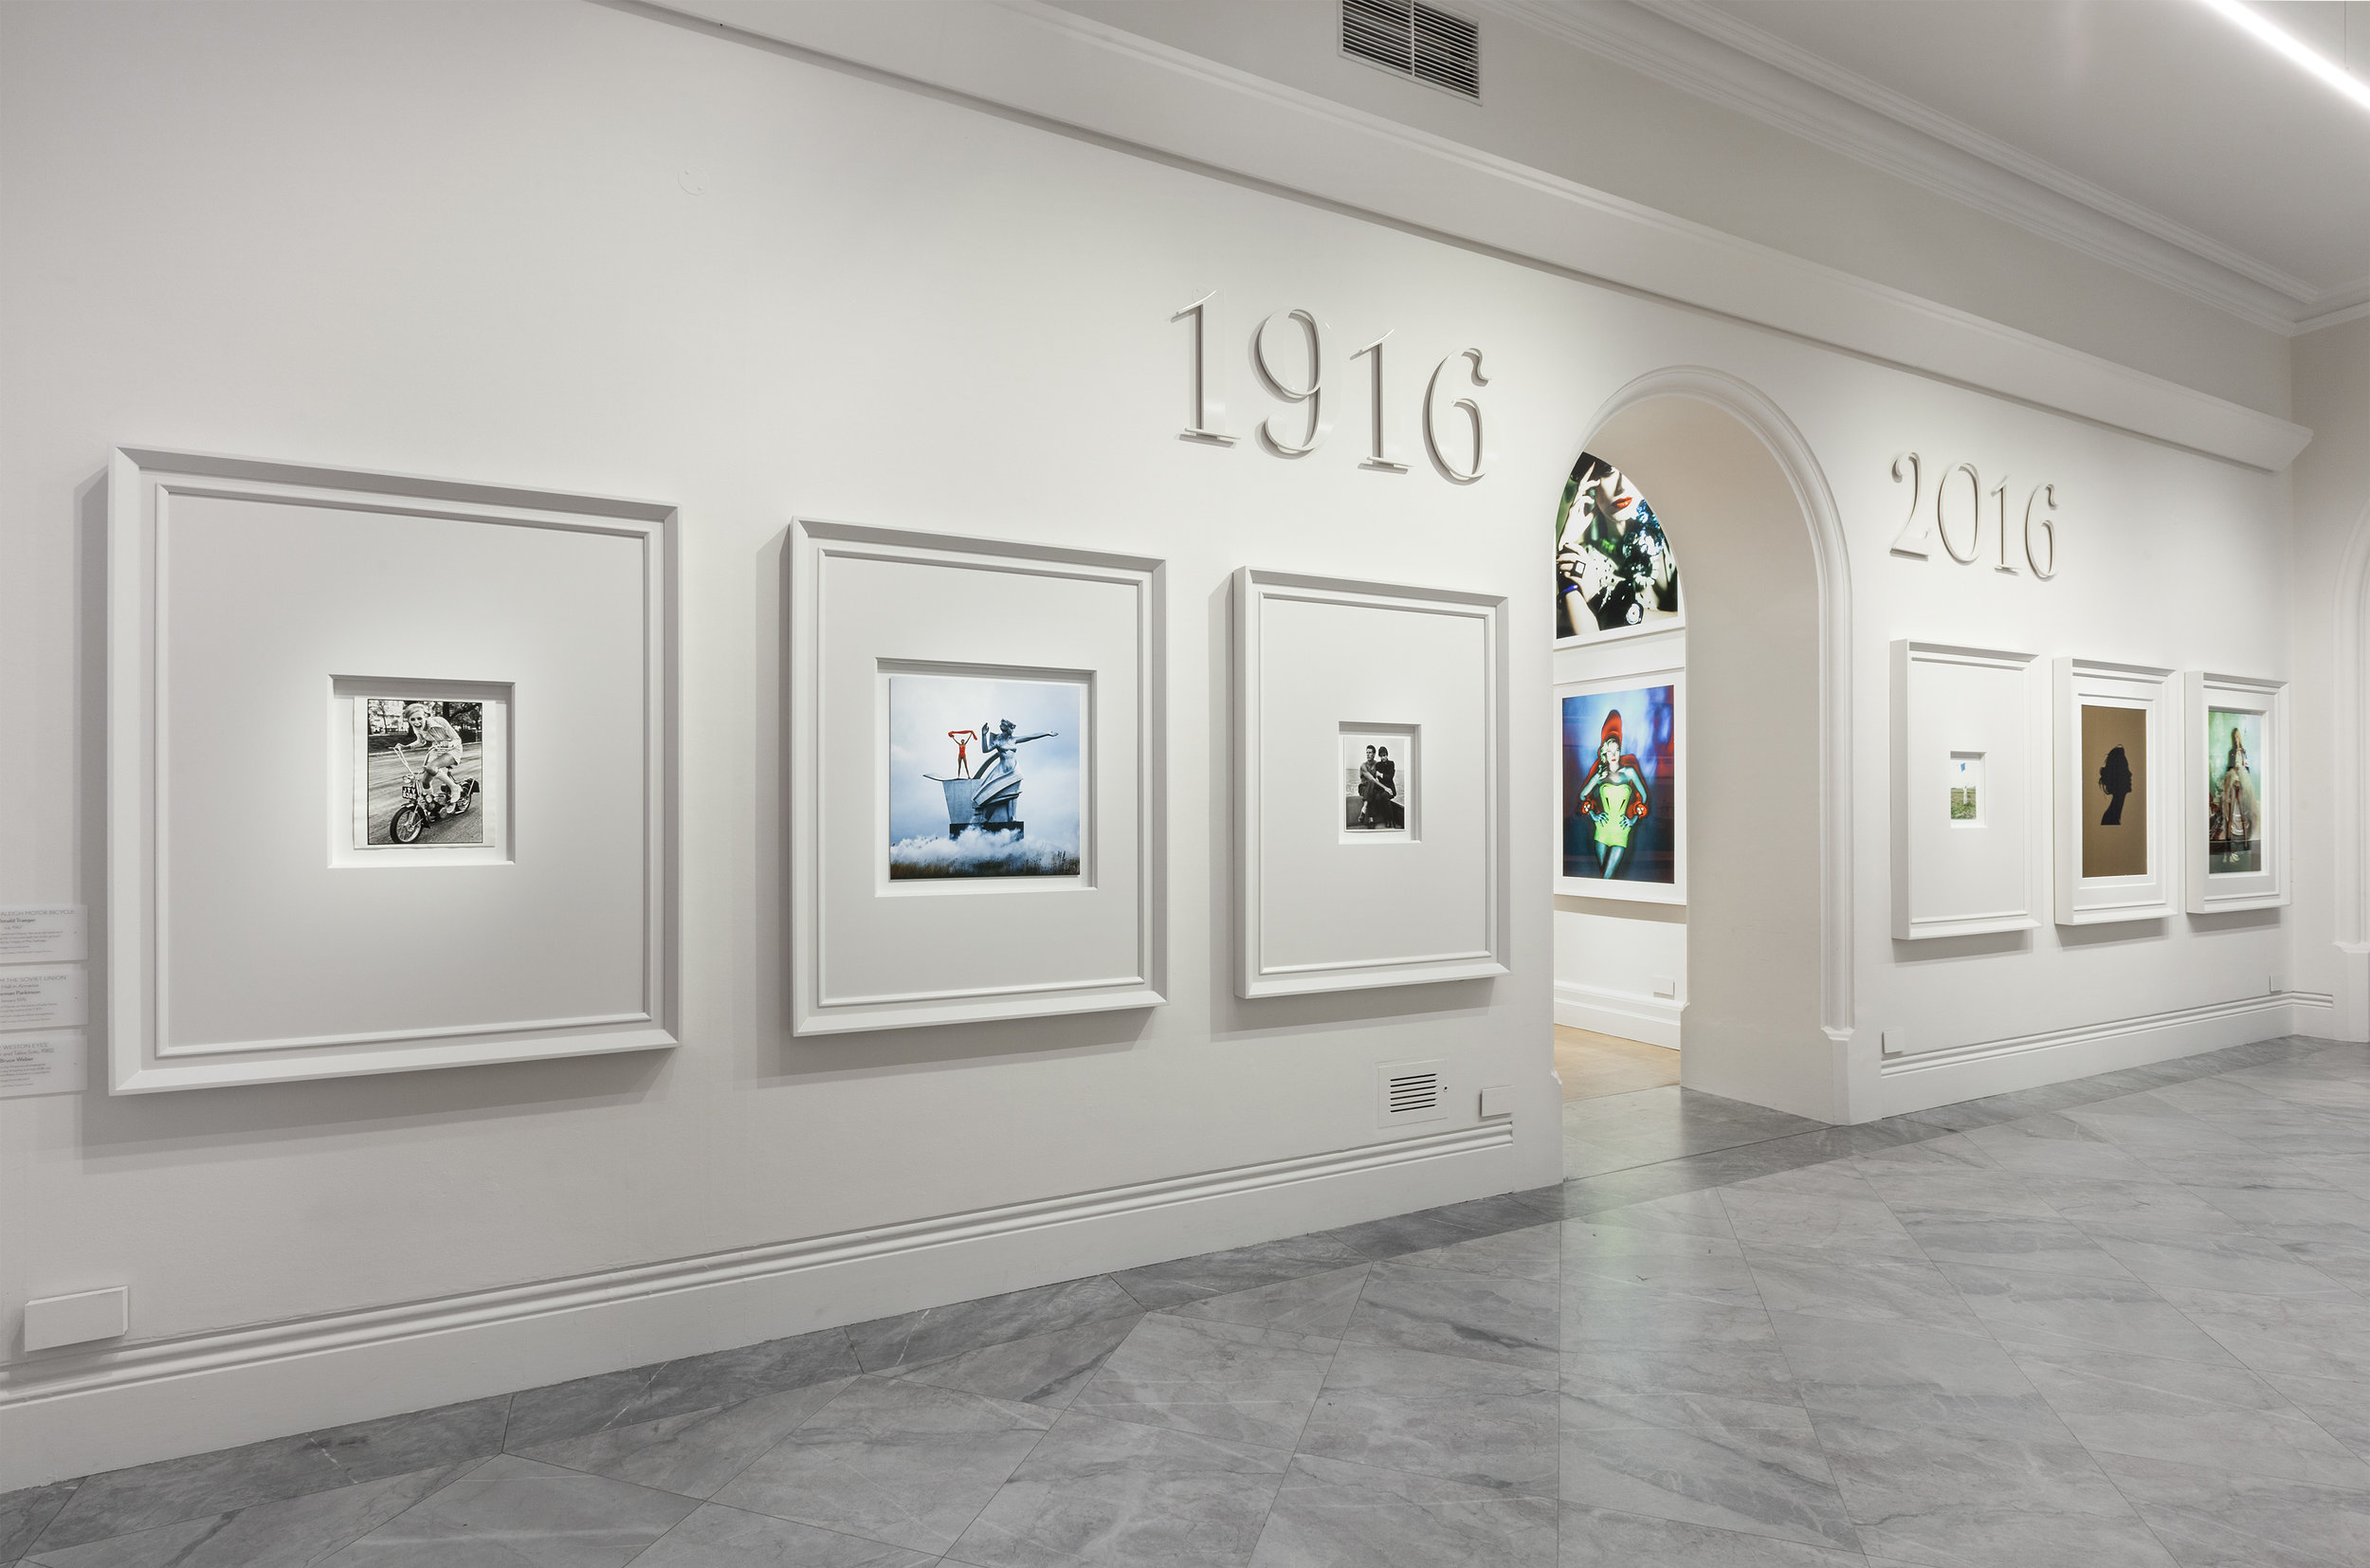 """Vogue 100"" exhibition at National Portrait Gallery, London, 2016"